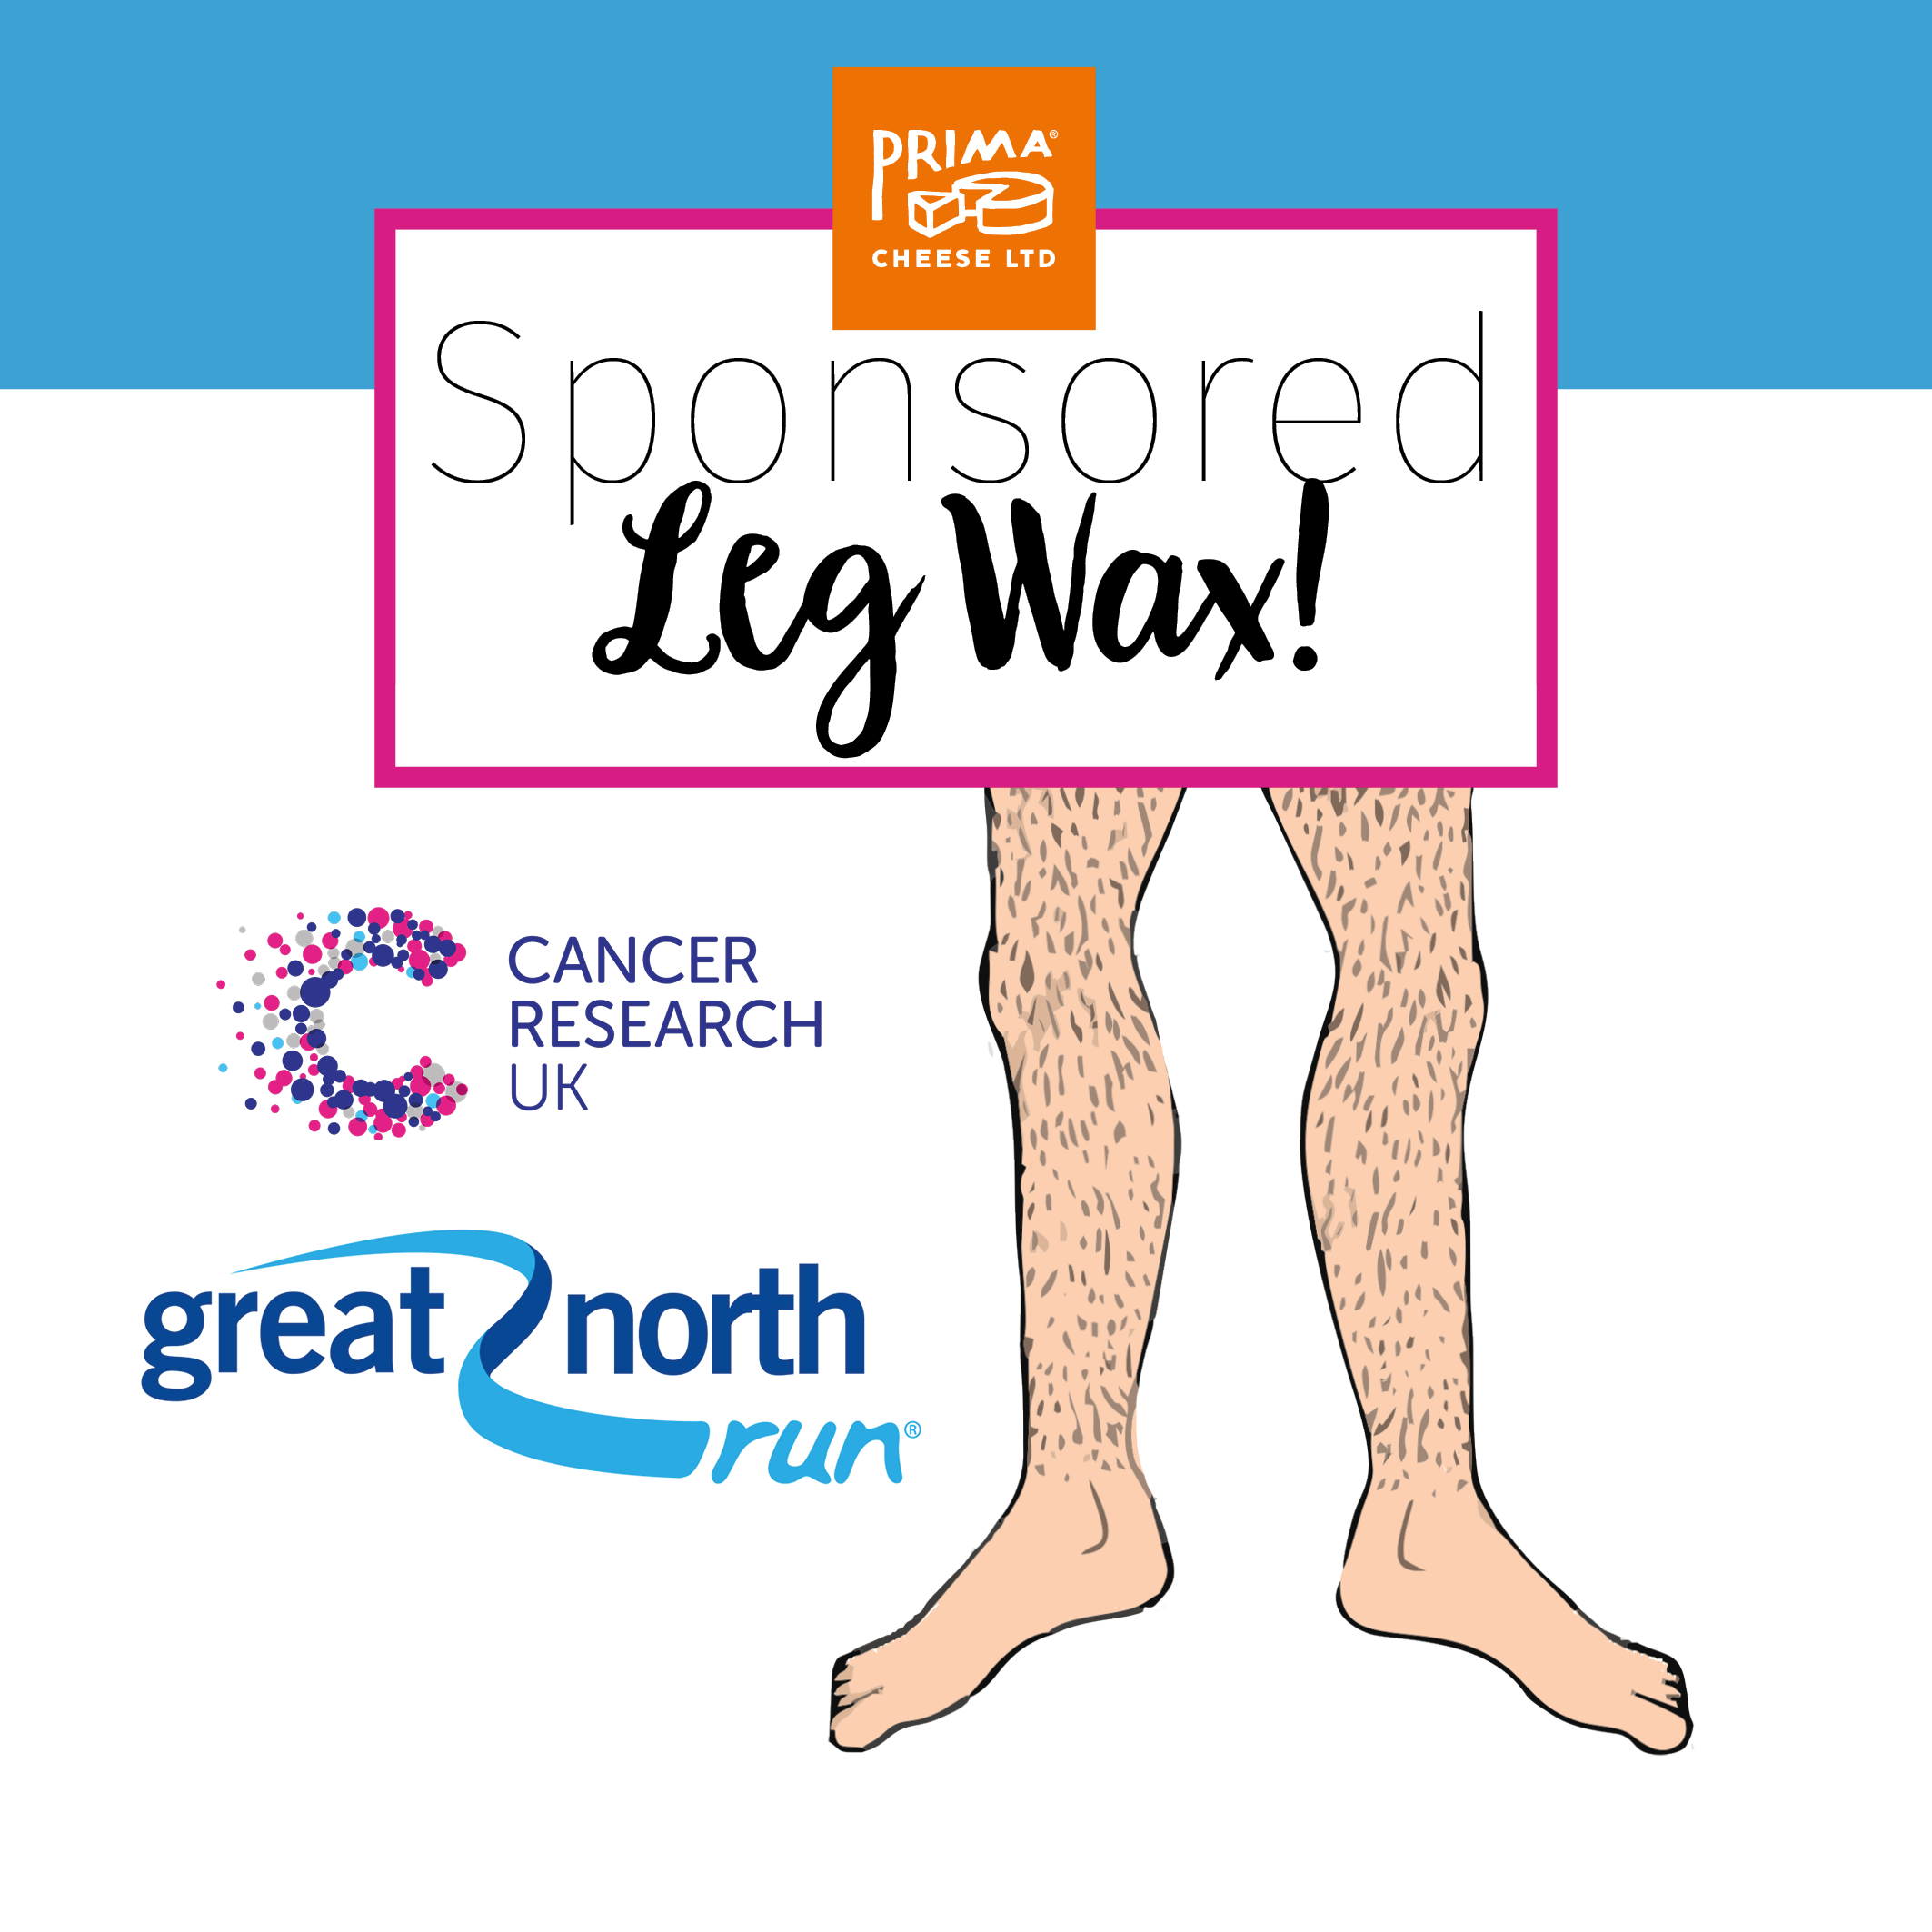 Sponsored Leg Wax for Cancer Research!